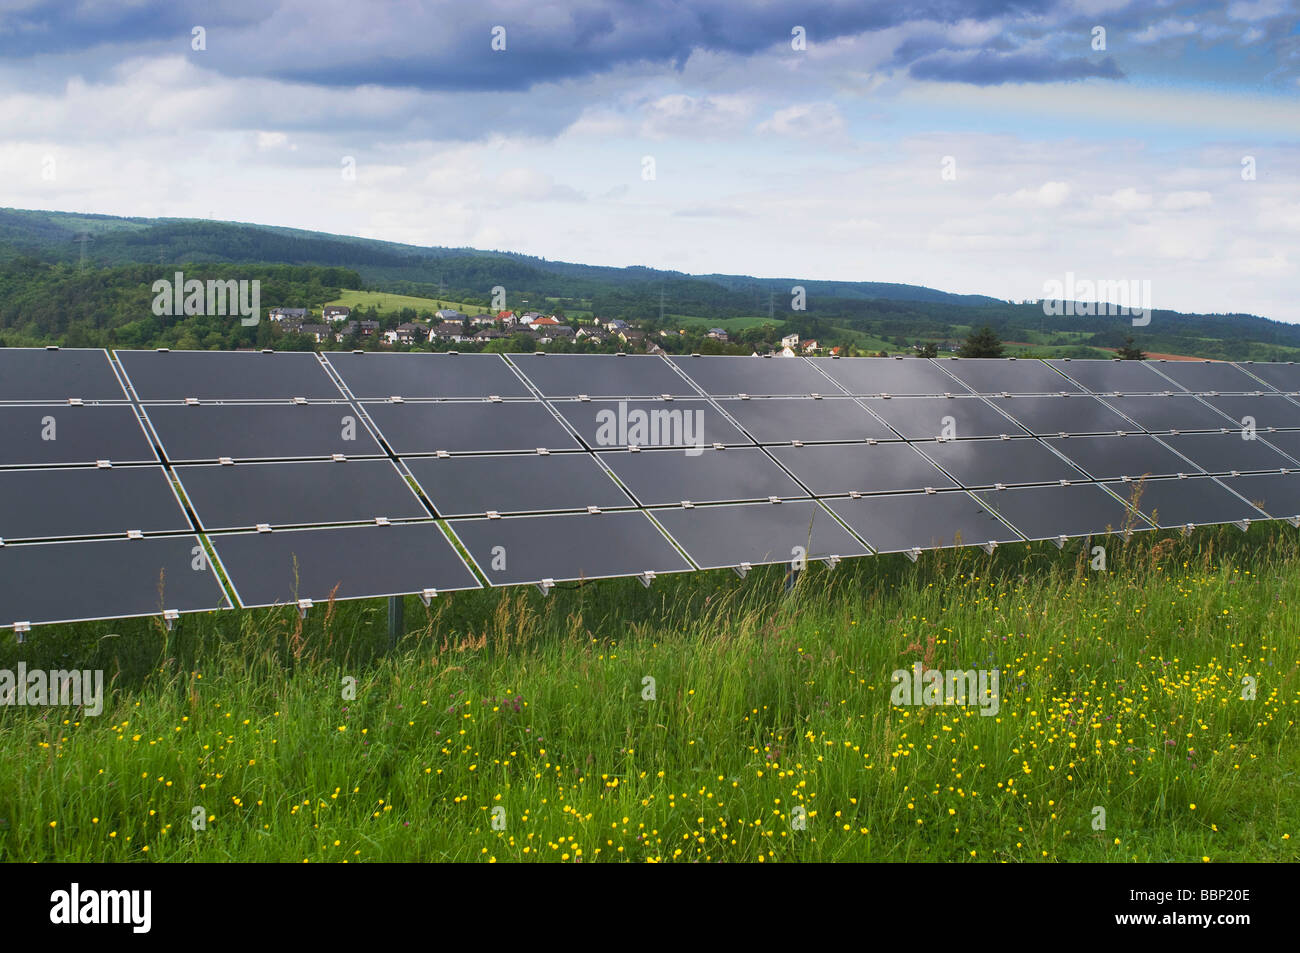 Solar power plant on a green field, photovoltaic system, view of a series of several modules - Stock Image